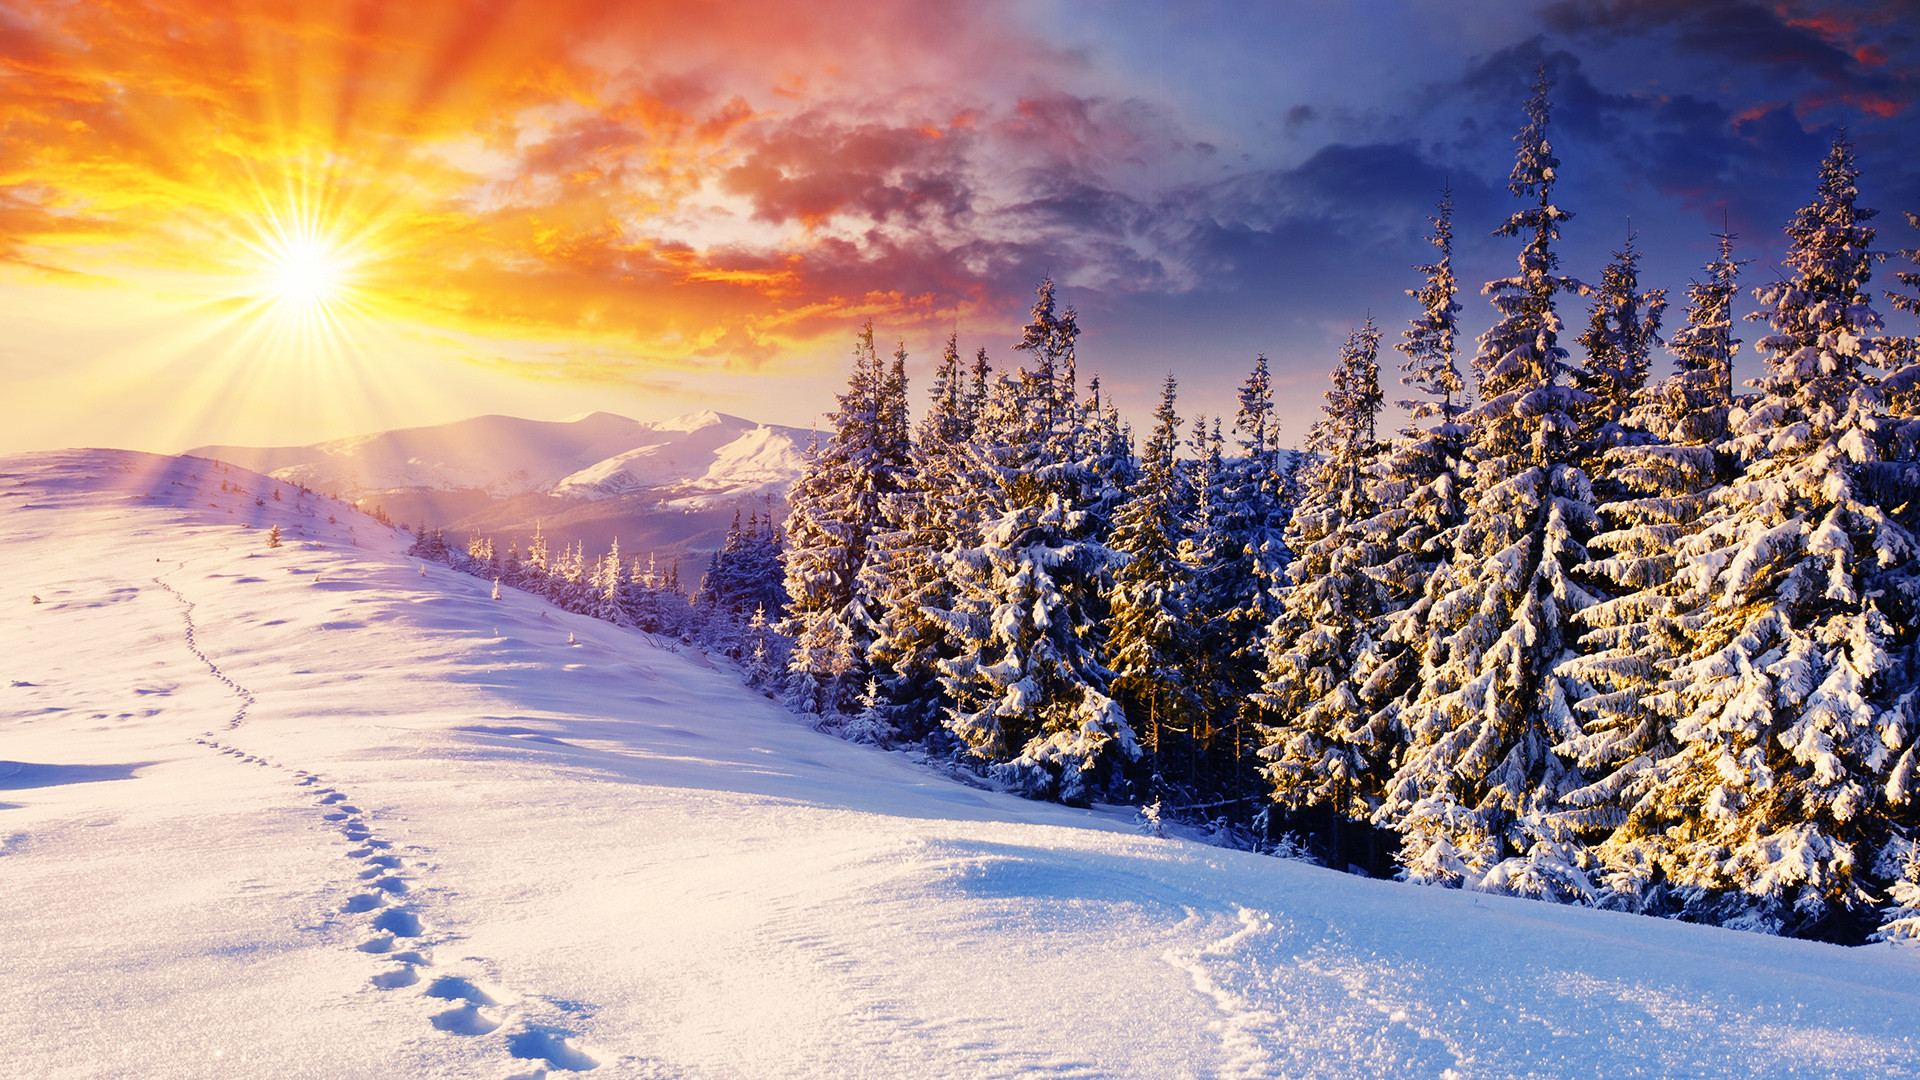 1920x1080 Free Winter Background Images